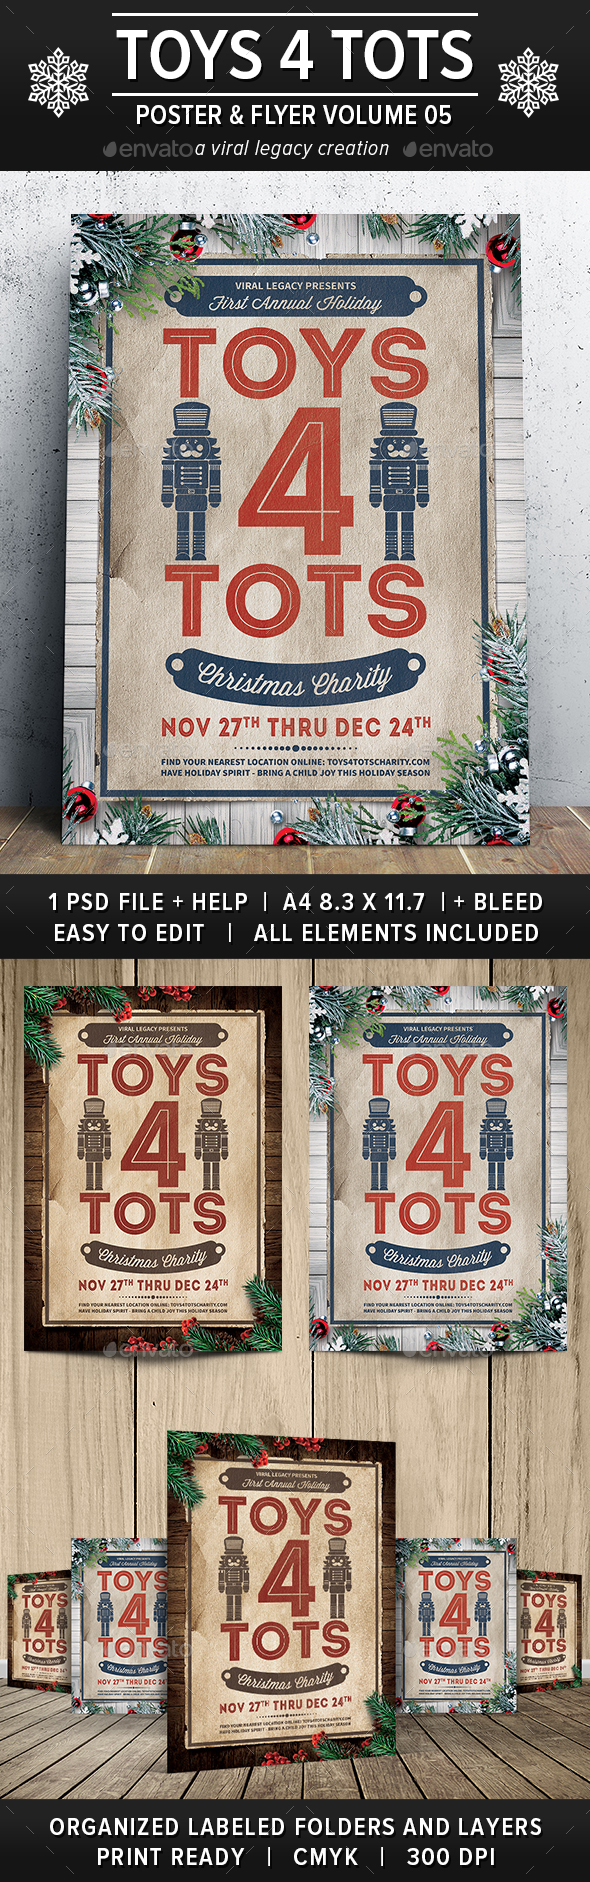 Toys 4 Tots & Toy Drive Poster / Flyer V05 - Flyers Print Templates